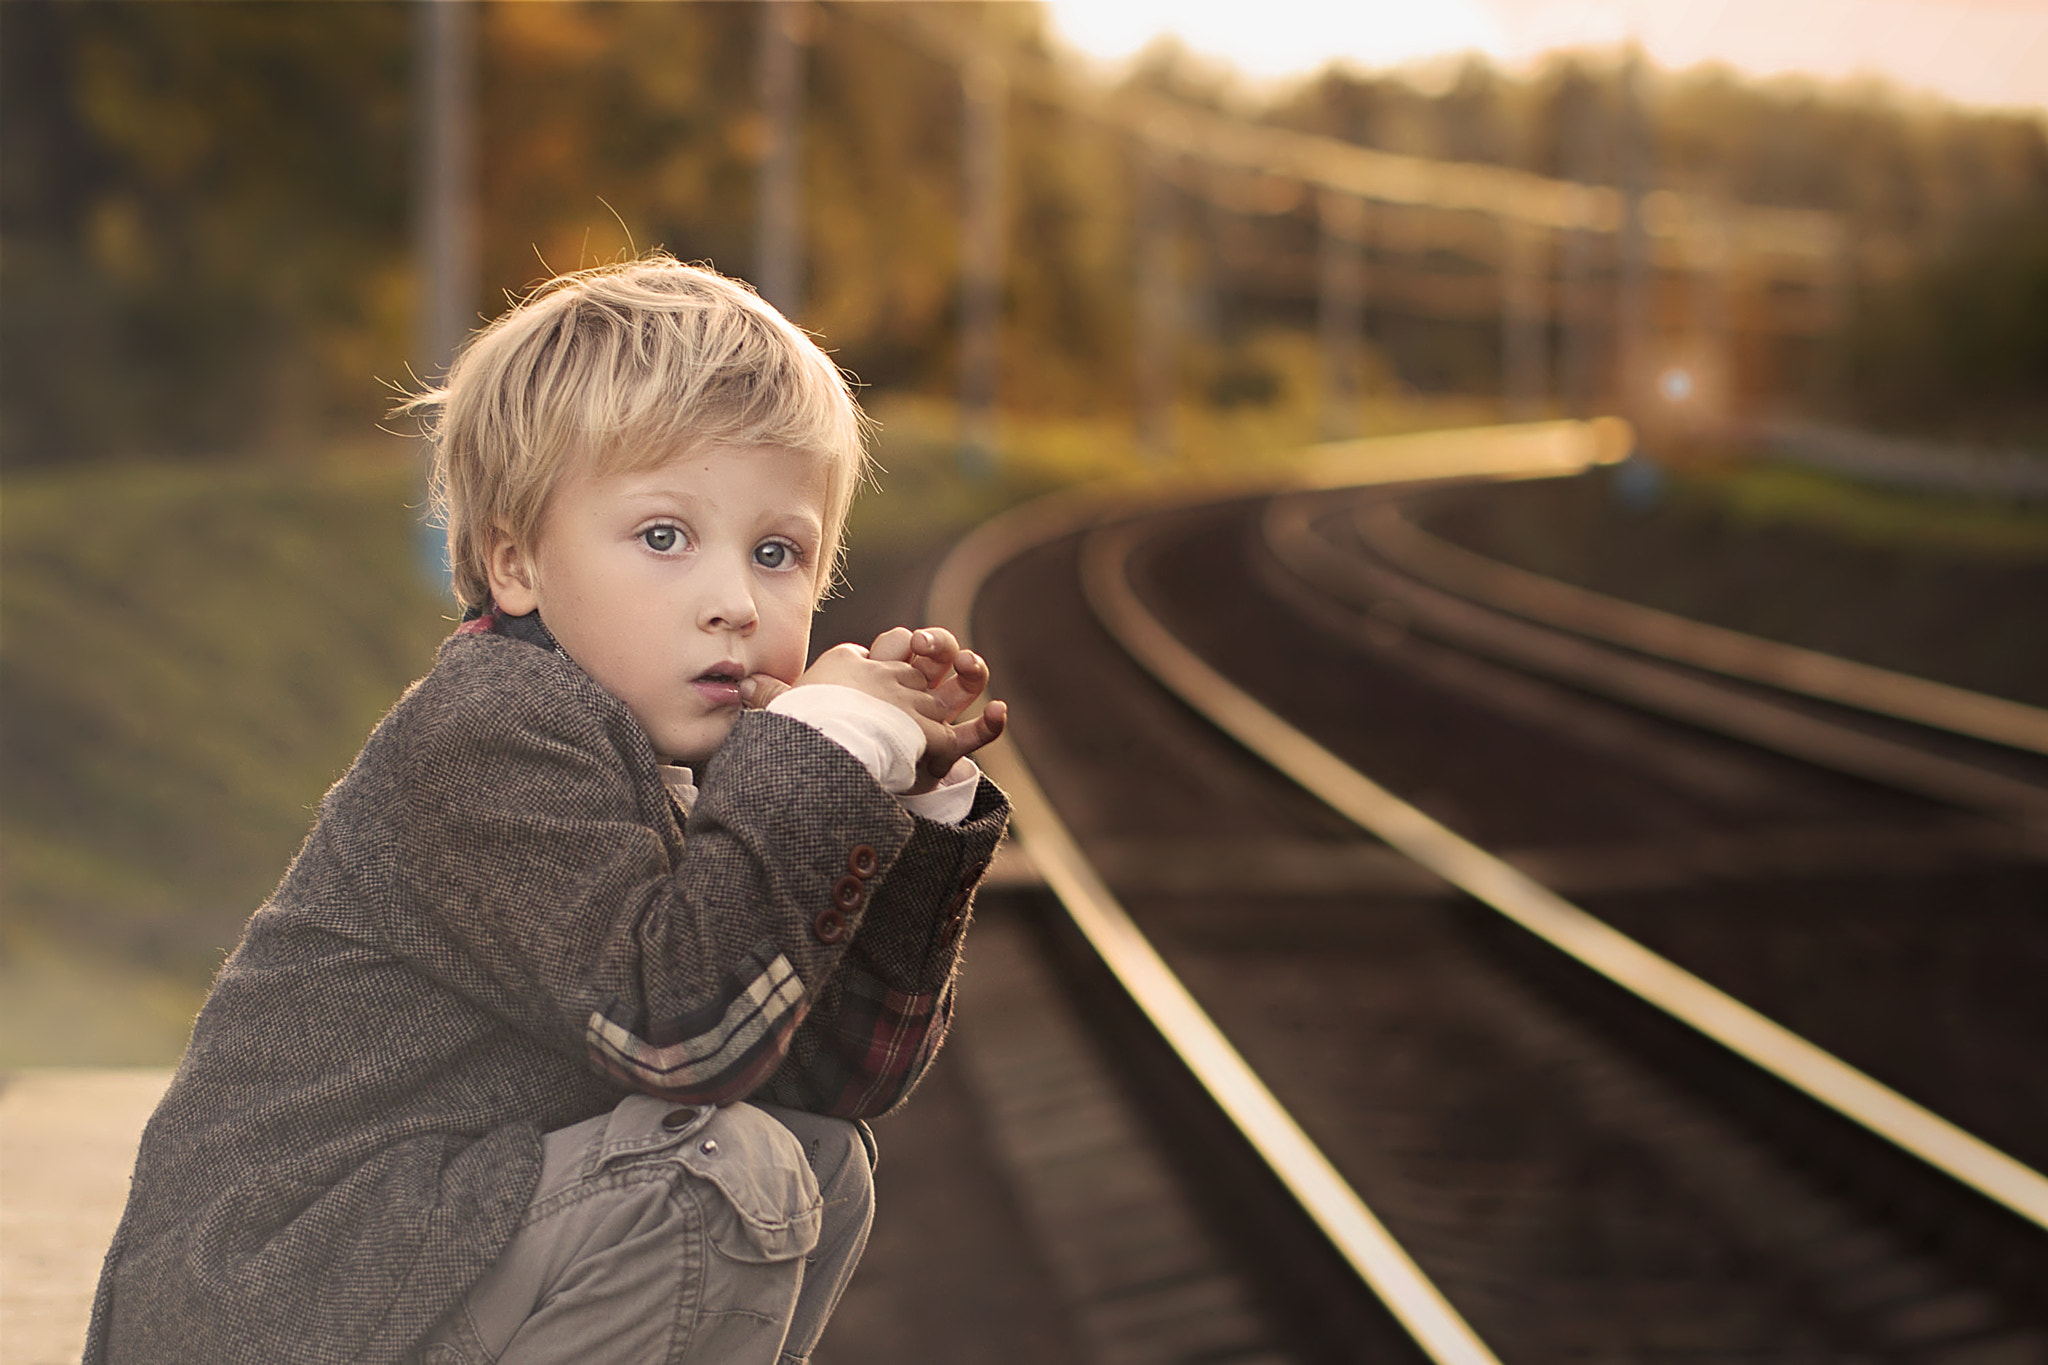 Photograph Waiting for a train by Elena Shumilova on 500px